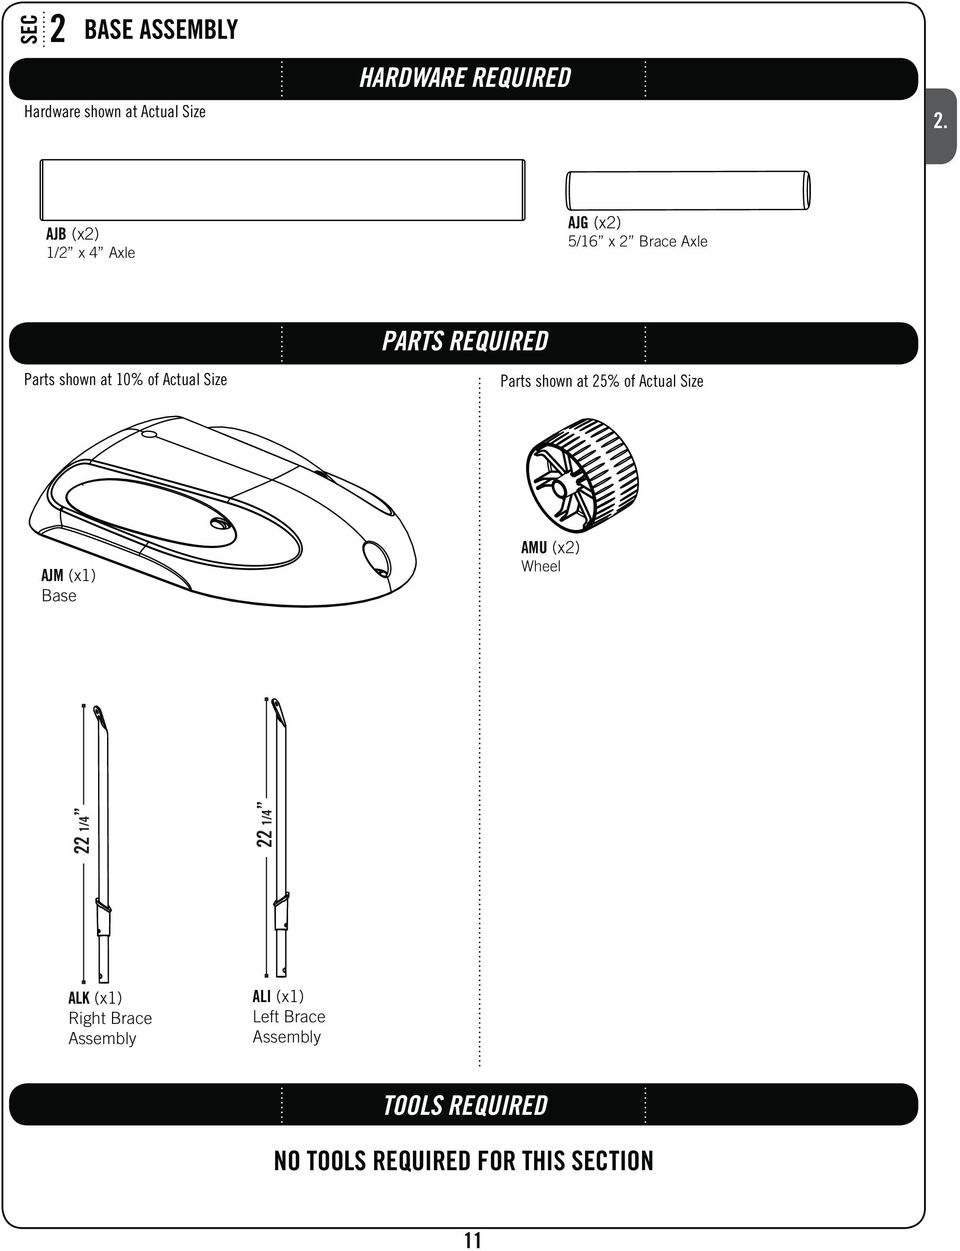 AJB AJG Parts shown at 10% of Actual Size PARTS REQUIRED